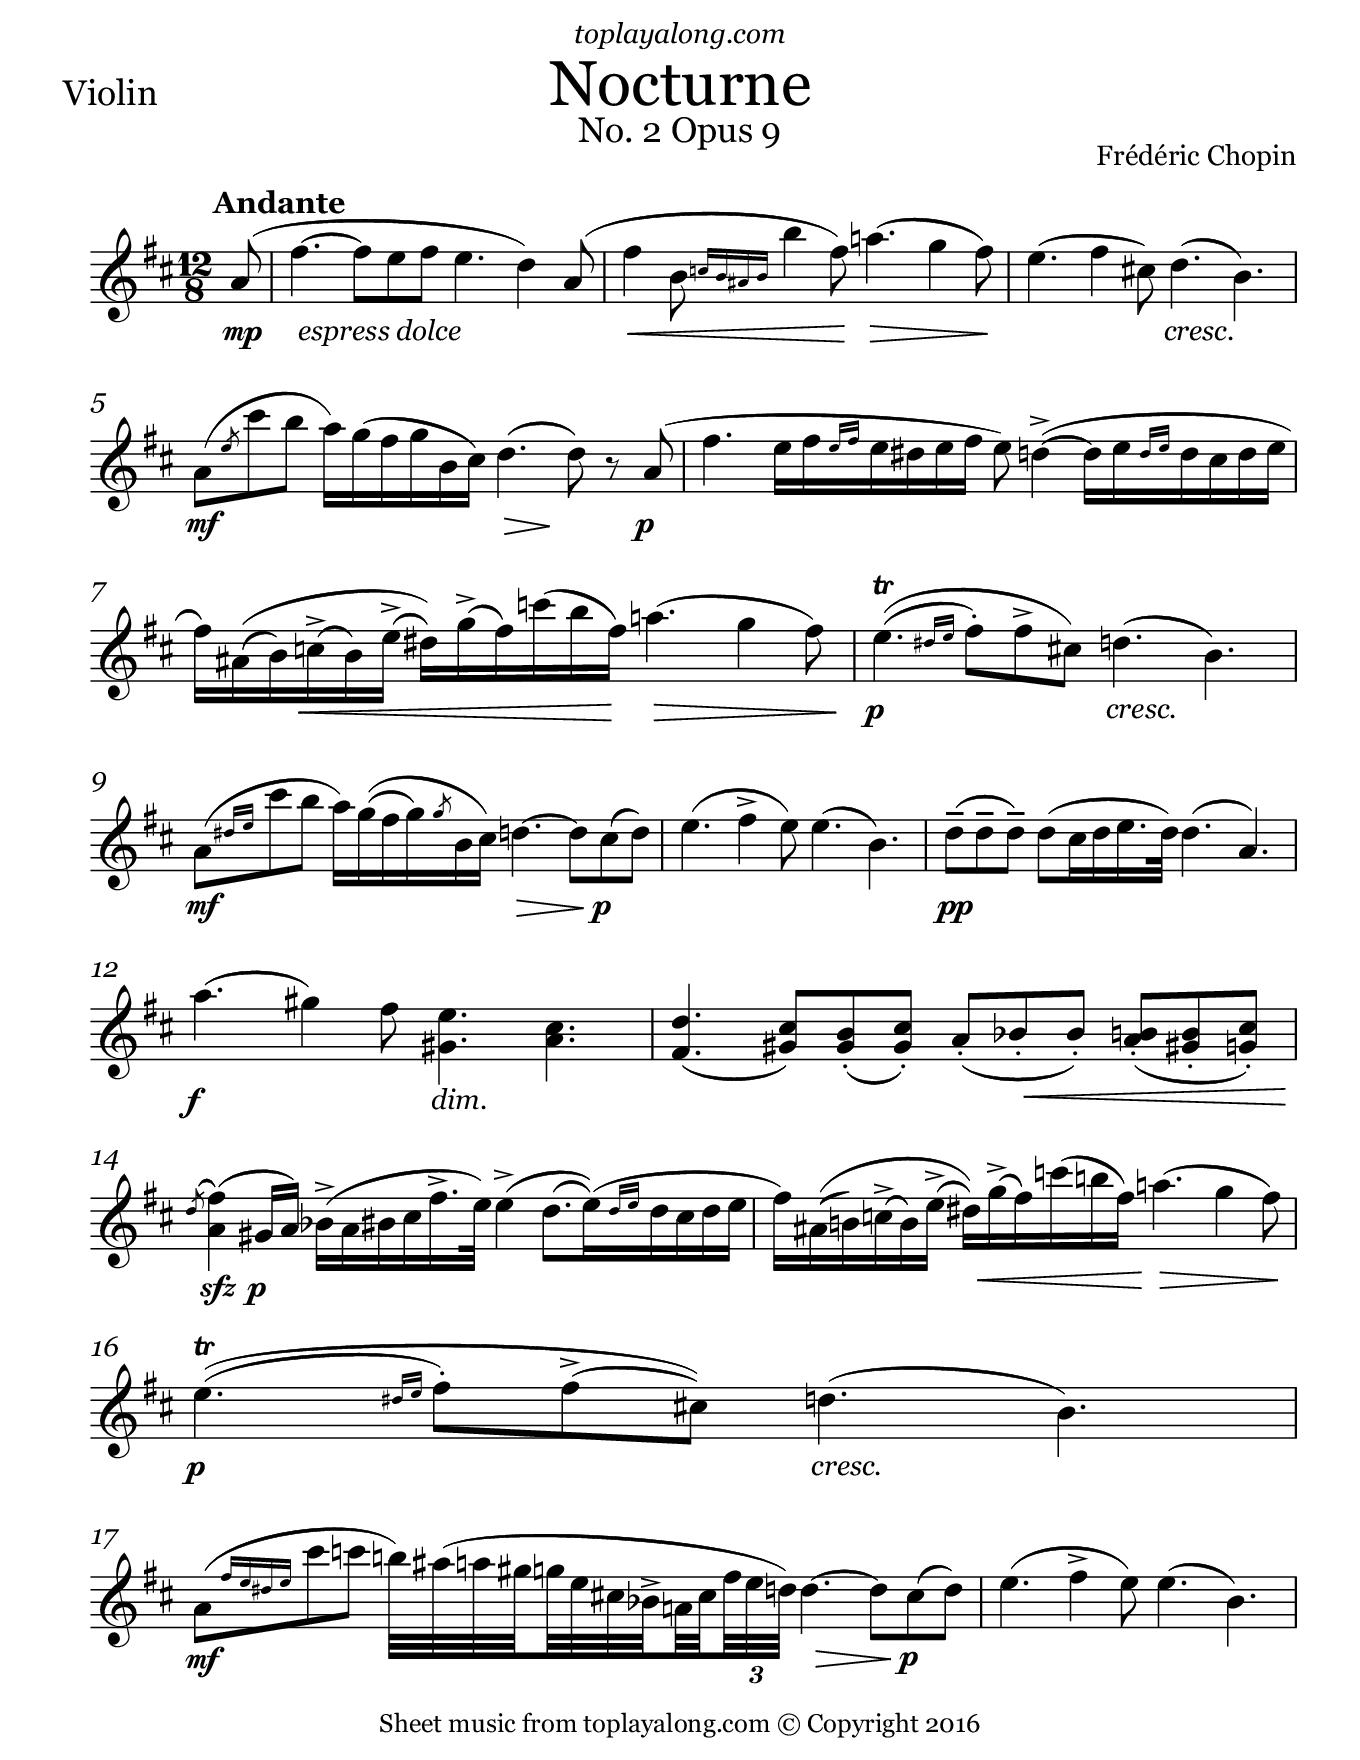 Nocturne No. 2 Op. 9 by Chopin...